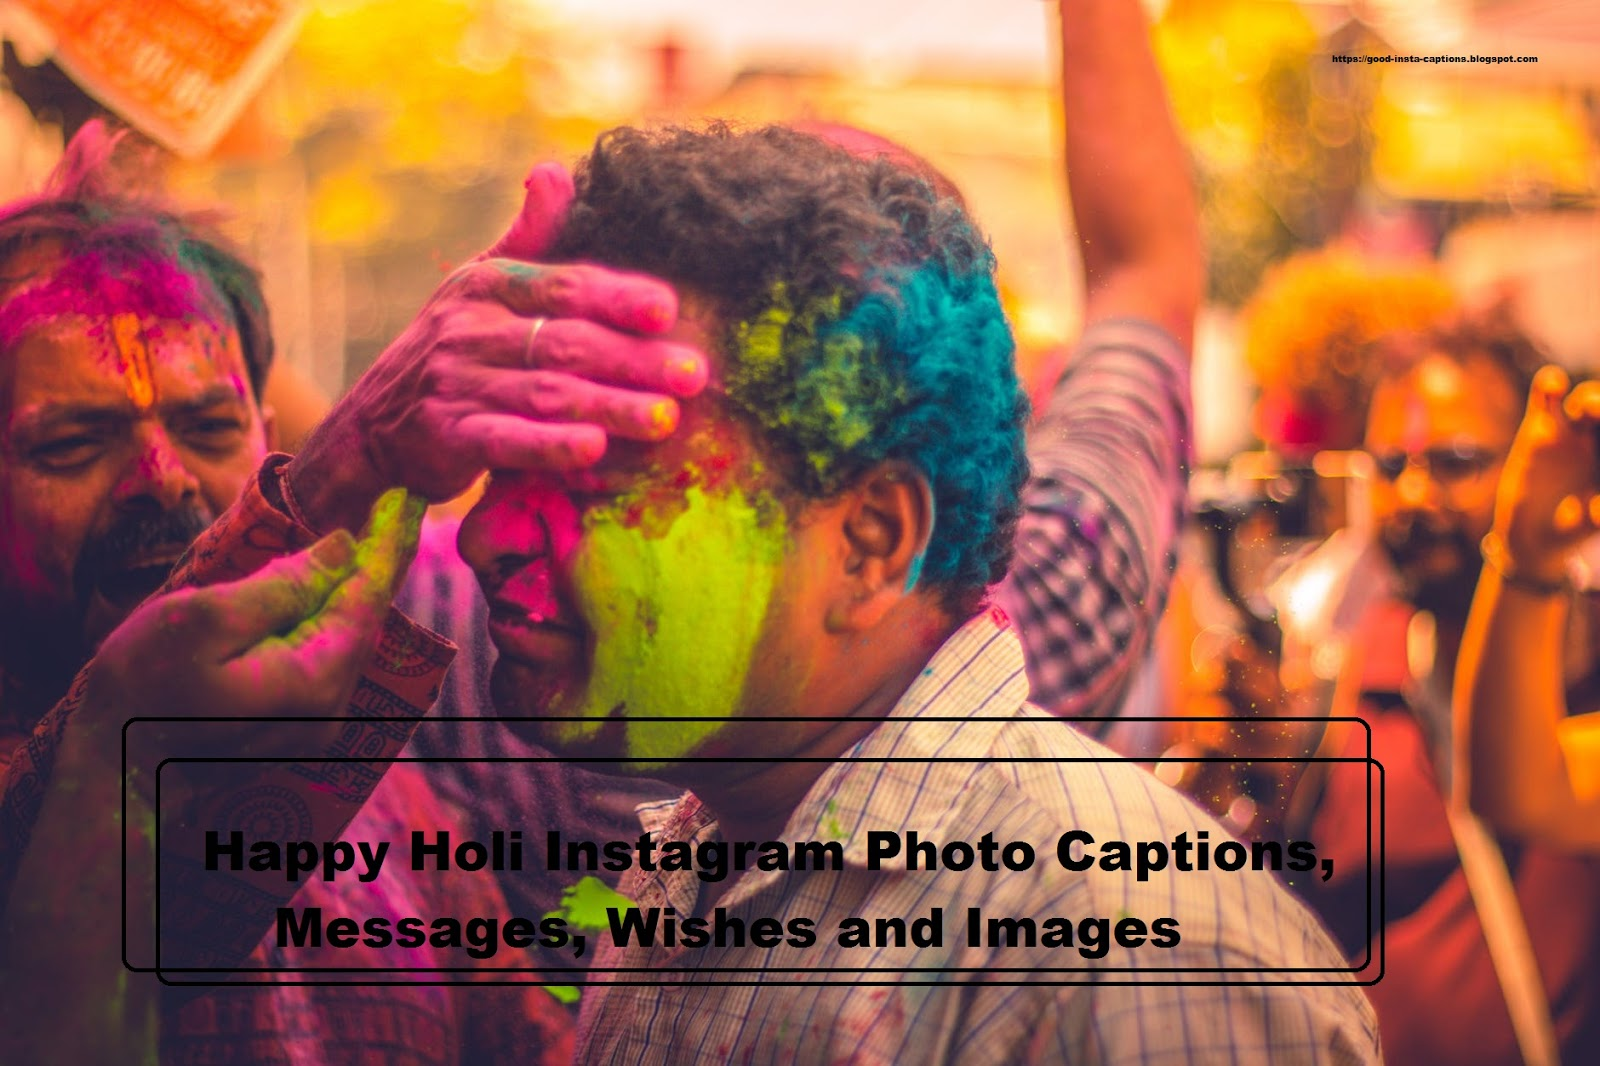 100+ Happy Holi Instagram Photo Captions, Messages, Wishes and Images